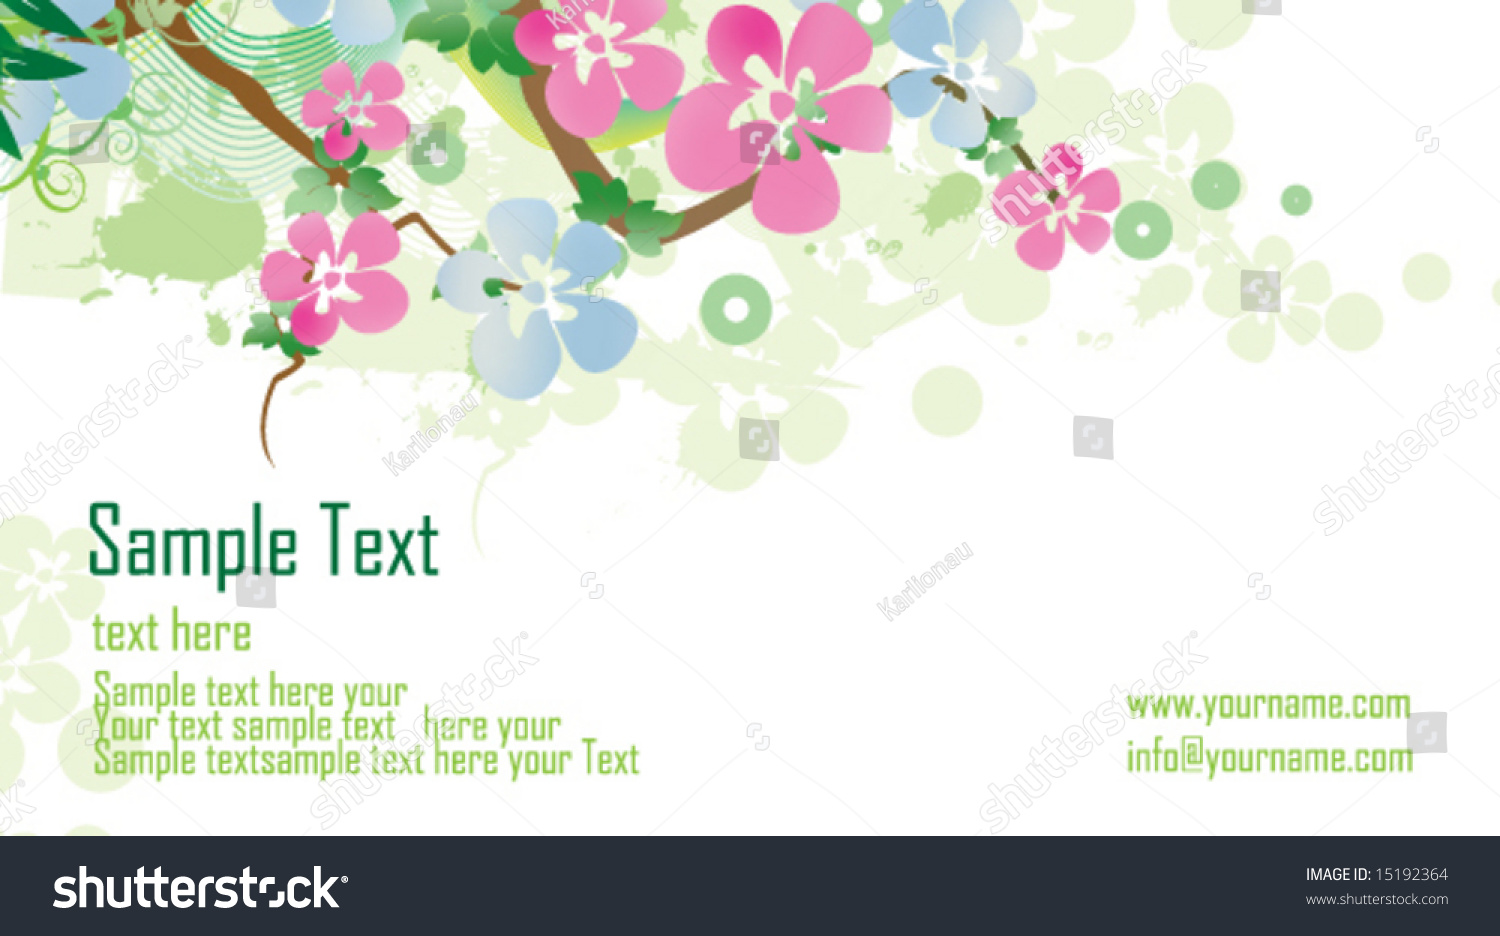 Floral Business Card Stock Vector 15192364 - Shutterstock